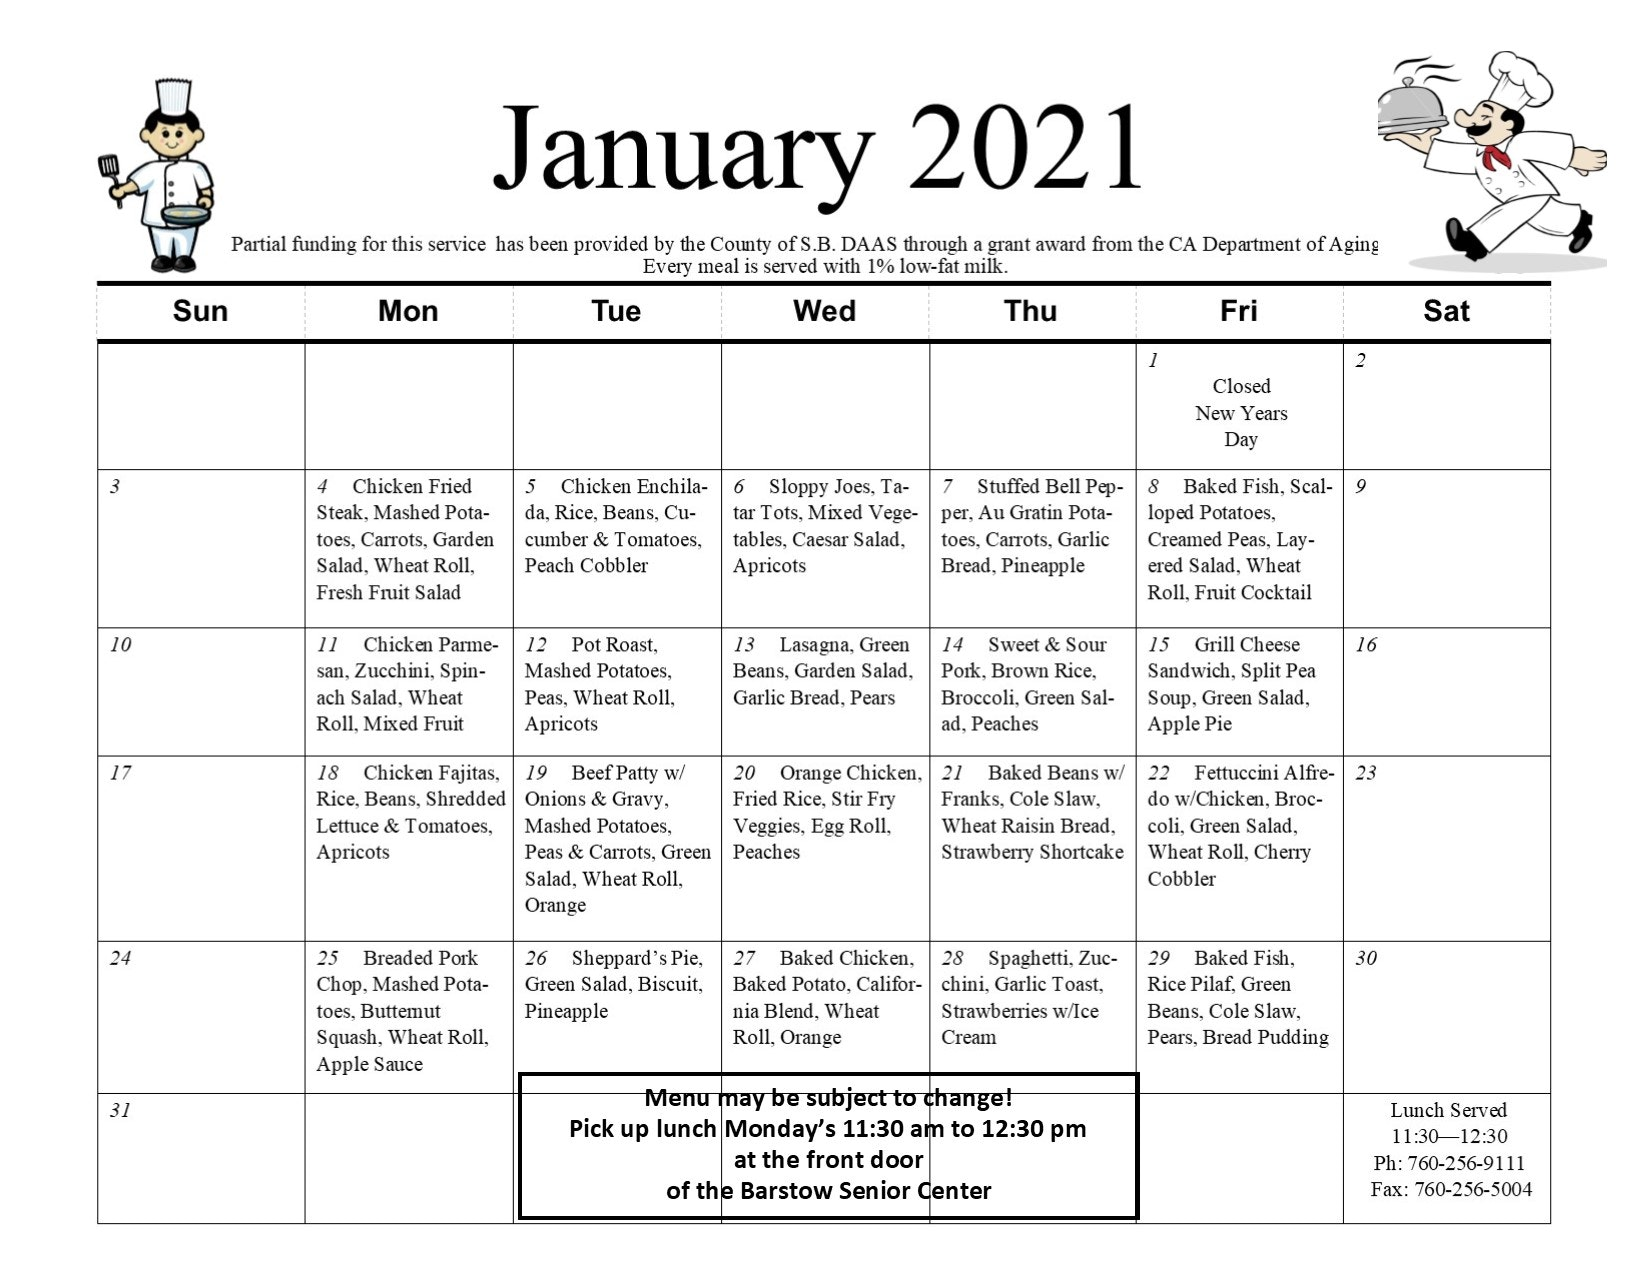 Meals on Wheels January 2021 Calendar. Partial funding for this service has been provided by the County of San Bernardino DAAS through a grant award from the CA Department of Aging. Every meal is served with 1% low-fat milk. Friday, January 1st, Closed New Years Day. Monday, January 4th, Chicken Fried Steak, Mashed Potatoes, Carrots, Garden Salad, Wheat Roll, Fresh Fruit Salad, Tuesday, January 5th, Chicken Enchilada, Rice, Beans, Cucumber & Tomatoes, Peach Cobbler. Wednesday, January 6th, Sloppy Joes, Tater Tots, Mixed Vegetables, Caesar Salad, Apricots. Thursday, January 7th, Stuffed Bell Pepper, Au Gratin Potatoes, Carrots, Garlic Bread, Pineapple. Friday, January 8th, Baked Fish, Scalloped Potatoes, Creamed Peas, Layered Salad, Wheat Roll, Fruit Cocktail. Monday, January 11th, Chicken Parmesan, Zucchini, Spinach Salad, Wheat Roll, Mixed Fruit. Tuesday, January 12th, Pot Roast, Mashed Potatoes, Peas, Wheat Roll, Apricots. Wednesday, January 13th, Lasagna, Green Beans, Garden Salad, Garlic Bread, Pears. Thursday, January 14th, Sweet & Sour Pork, Brown Rice, Broccoli, Green Salad, Peaches. Friday, January 15th, Grilled Cheese Sandwich, Split Pea Soup, Green Salad, Apple Pie. Monday, January 18th, Chicken Fajitas, Rice, Beans, Shredded Lettuce & Tomatoes, Apricots. Tuesday, January 19th, Beef Patty with Onions & Gravy, Mashed Potatoes, Peas & Carrots, Green Salad, Wheat Roll, Orange. Wednesday, January 20th, Orange Chicken, Fried Rice, Stir Fry Veggies, Egg Roll, Peaches. Thursday, January 21st, Baked Beans with Franks, Cole Slaw, Wheat Raisin Bread, Strawberry Shortcake. Friday, January 22nd, Fettuccini Alfredo with Chicken, Broccoli, Green Salad, Wheat Roll, Cherry Cobbler. Monday, January 25th, Breaded Pork Chop, Mashed Potatoes, Butternut Squash, Wheat Roll, Apple Sauce. Tuesday, January 26th, Sheppard's Pie, Green Salad, Biscuit, Pineapple. Wednesday, January 27th, Baked Chicken, Baked Potato, California Blend, Wheat Roll, Orange. Thursday, January 28th, Spaghe